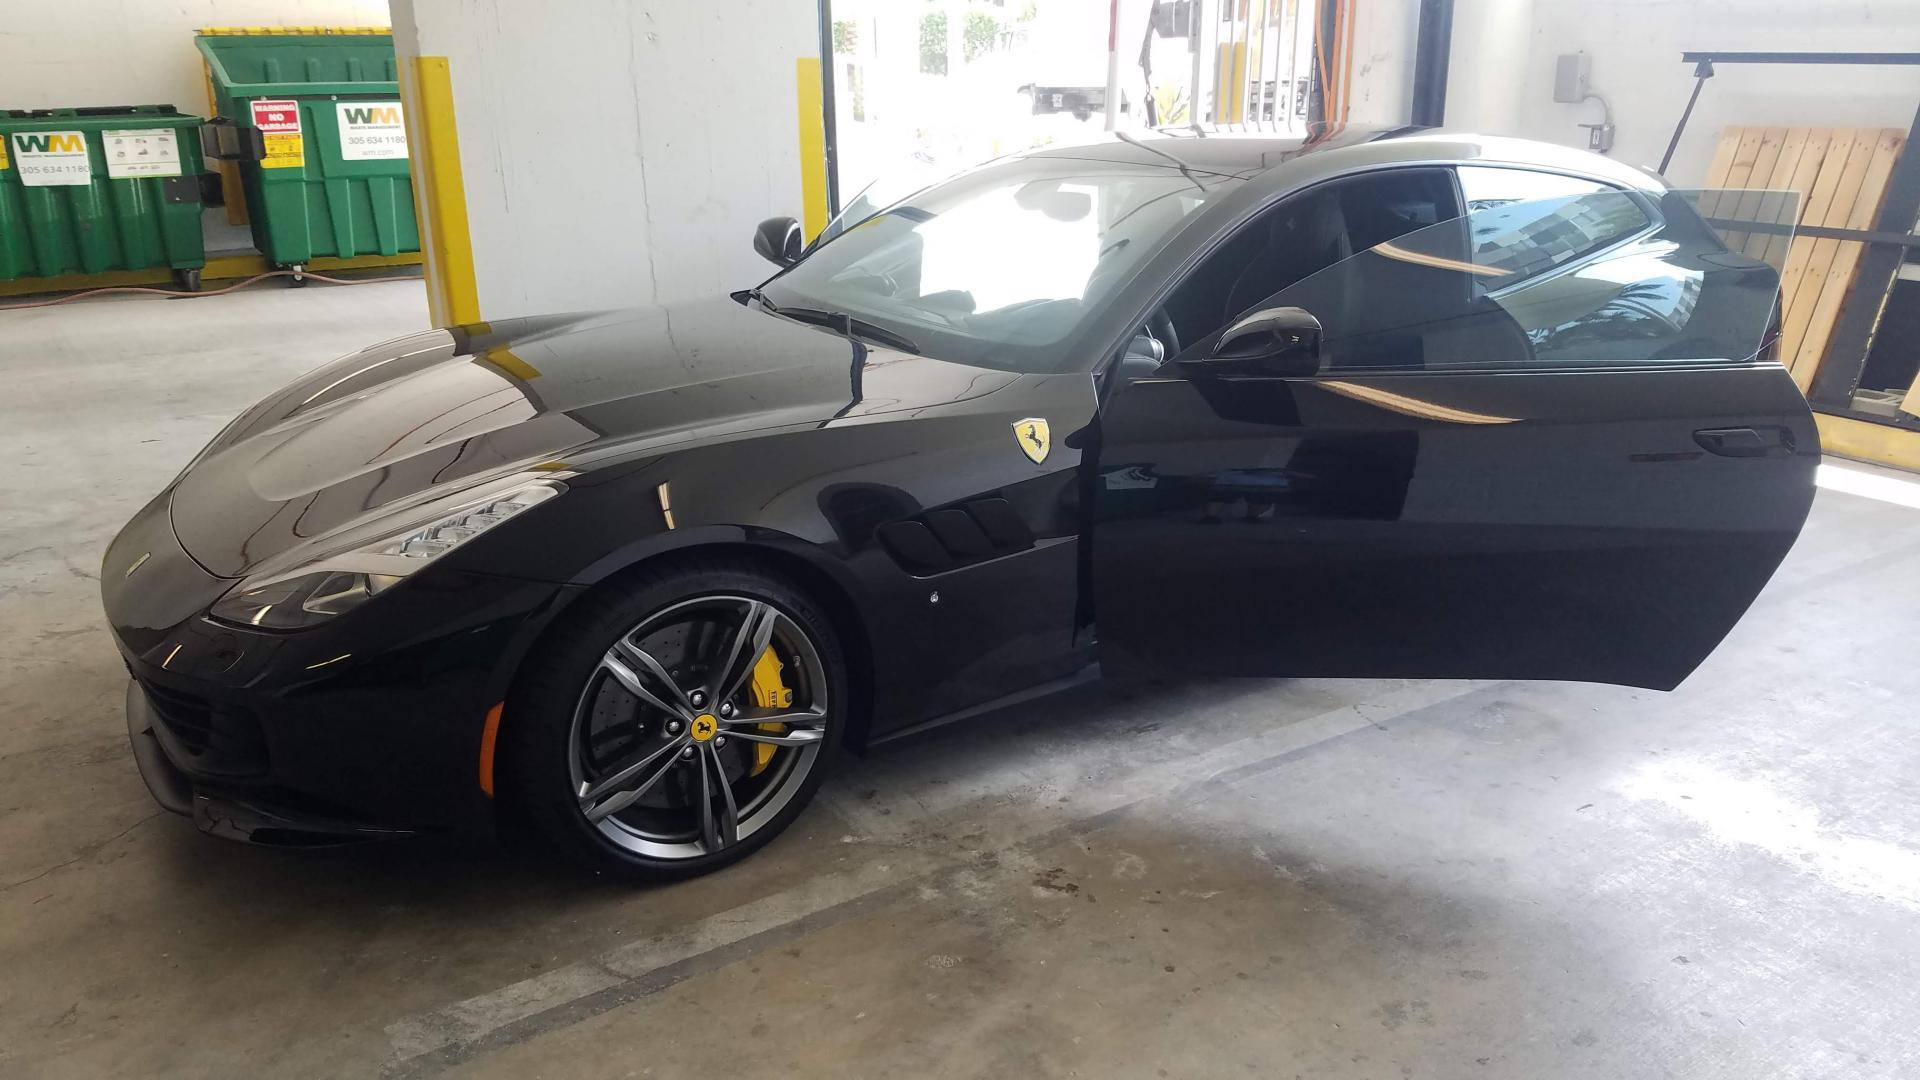 Complete window tinting 35% Color Stable 3M on Ferrari including windshield 80%